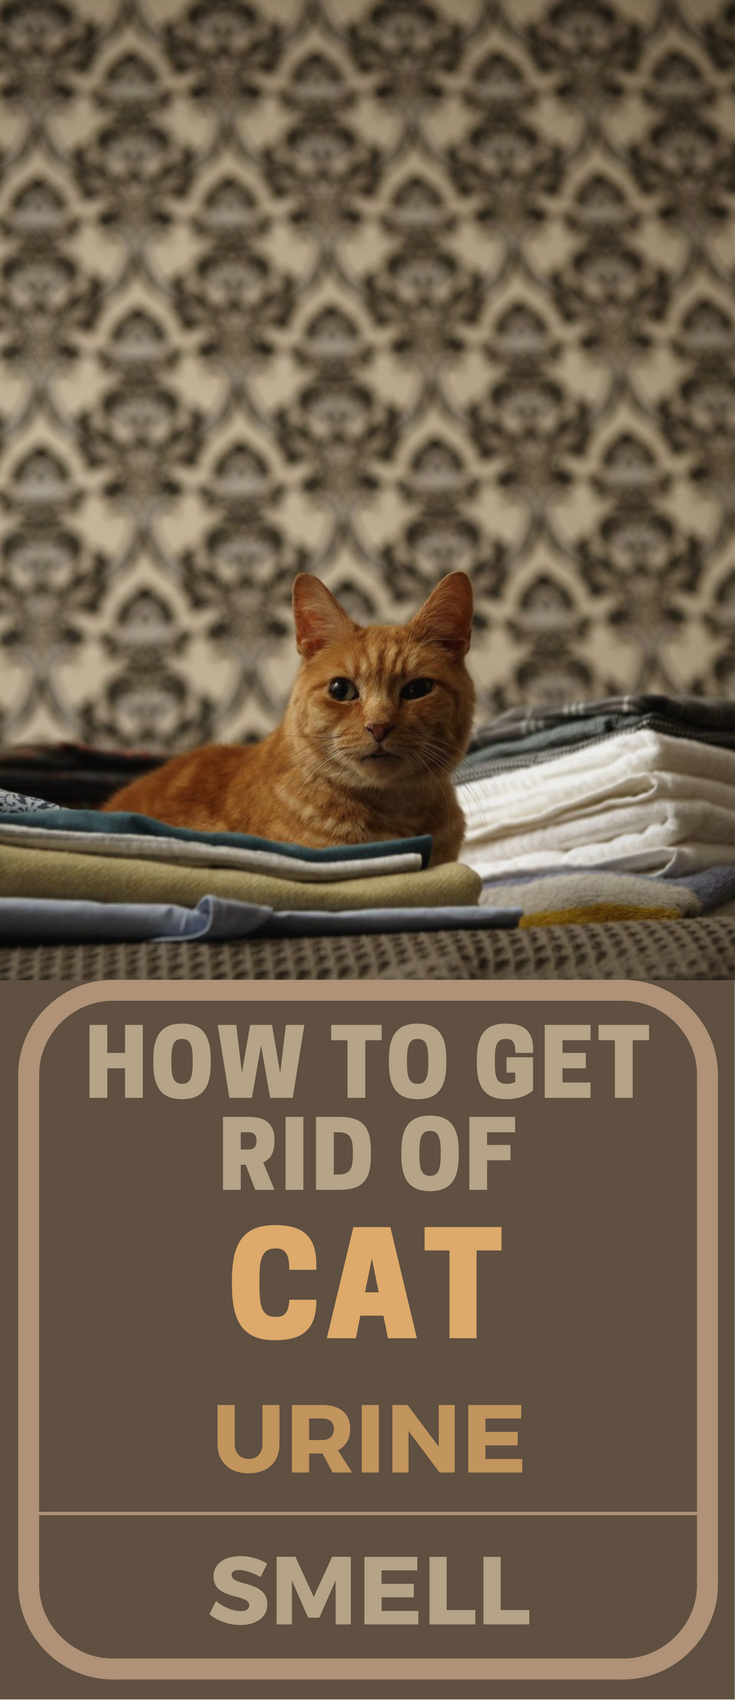 How To Get Rid Of Cat Urine Smell Topcleaningtips Com Cat Urine Smells Cats Smelling Cat Urine